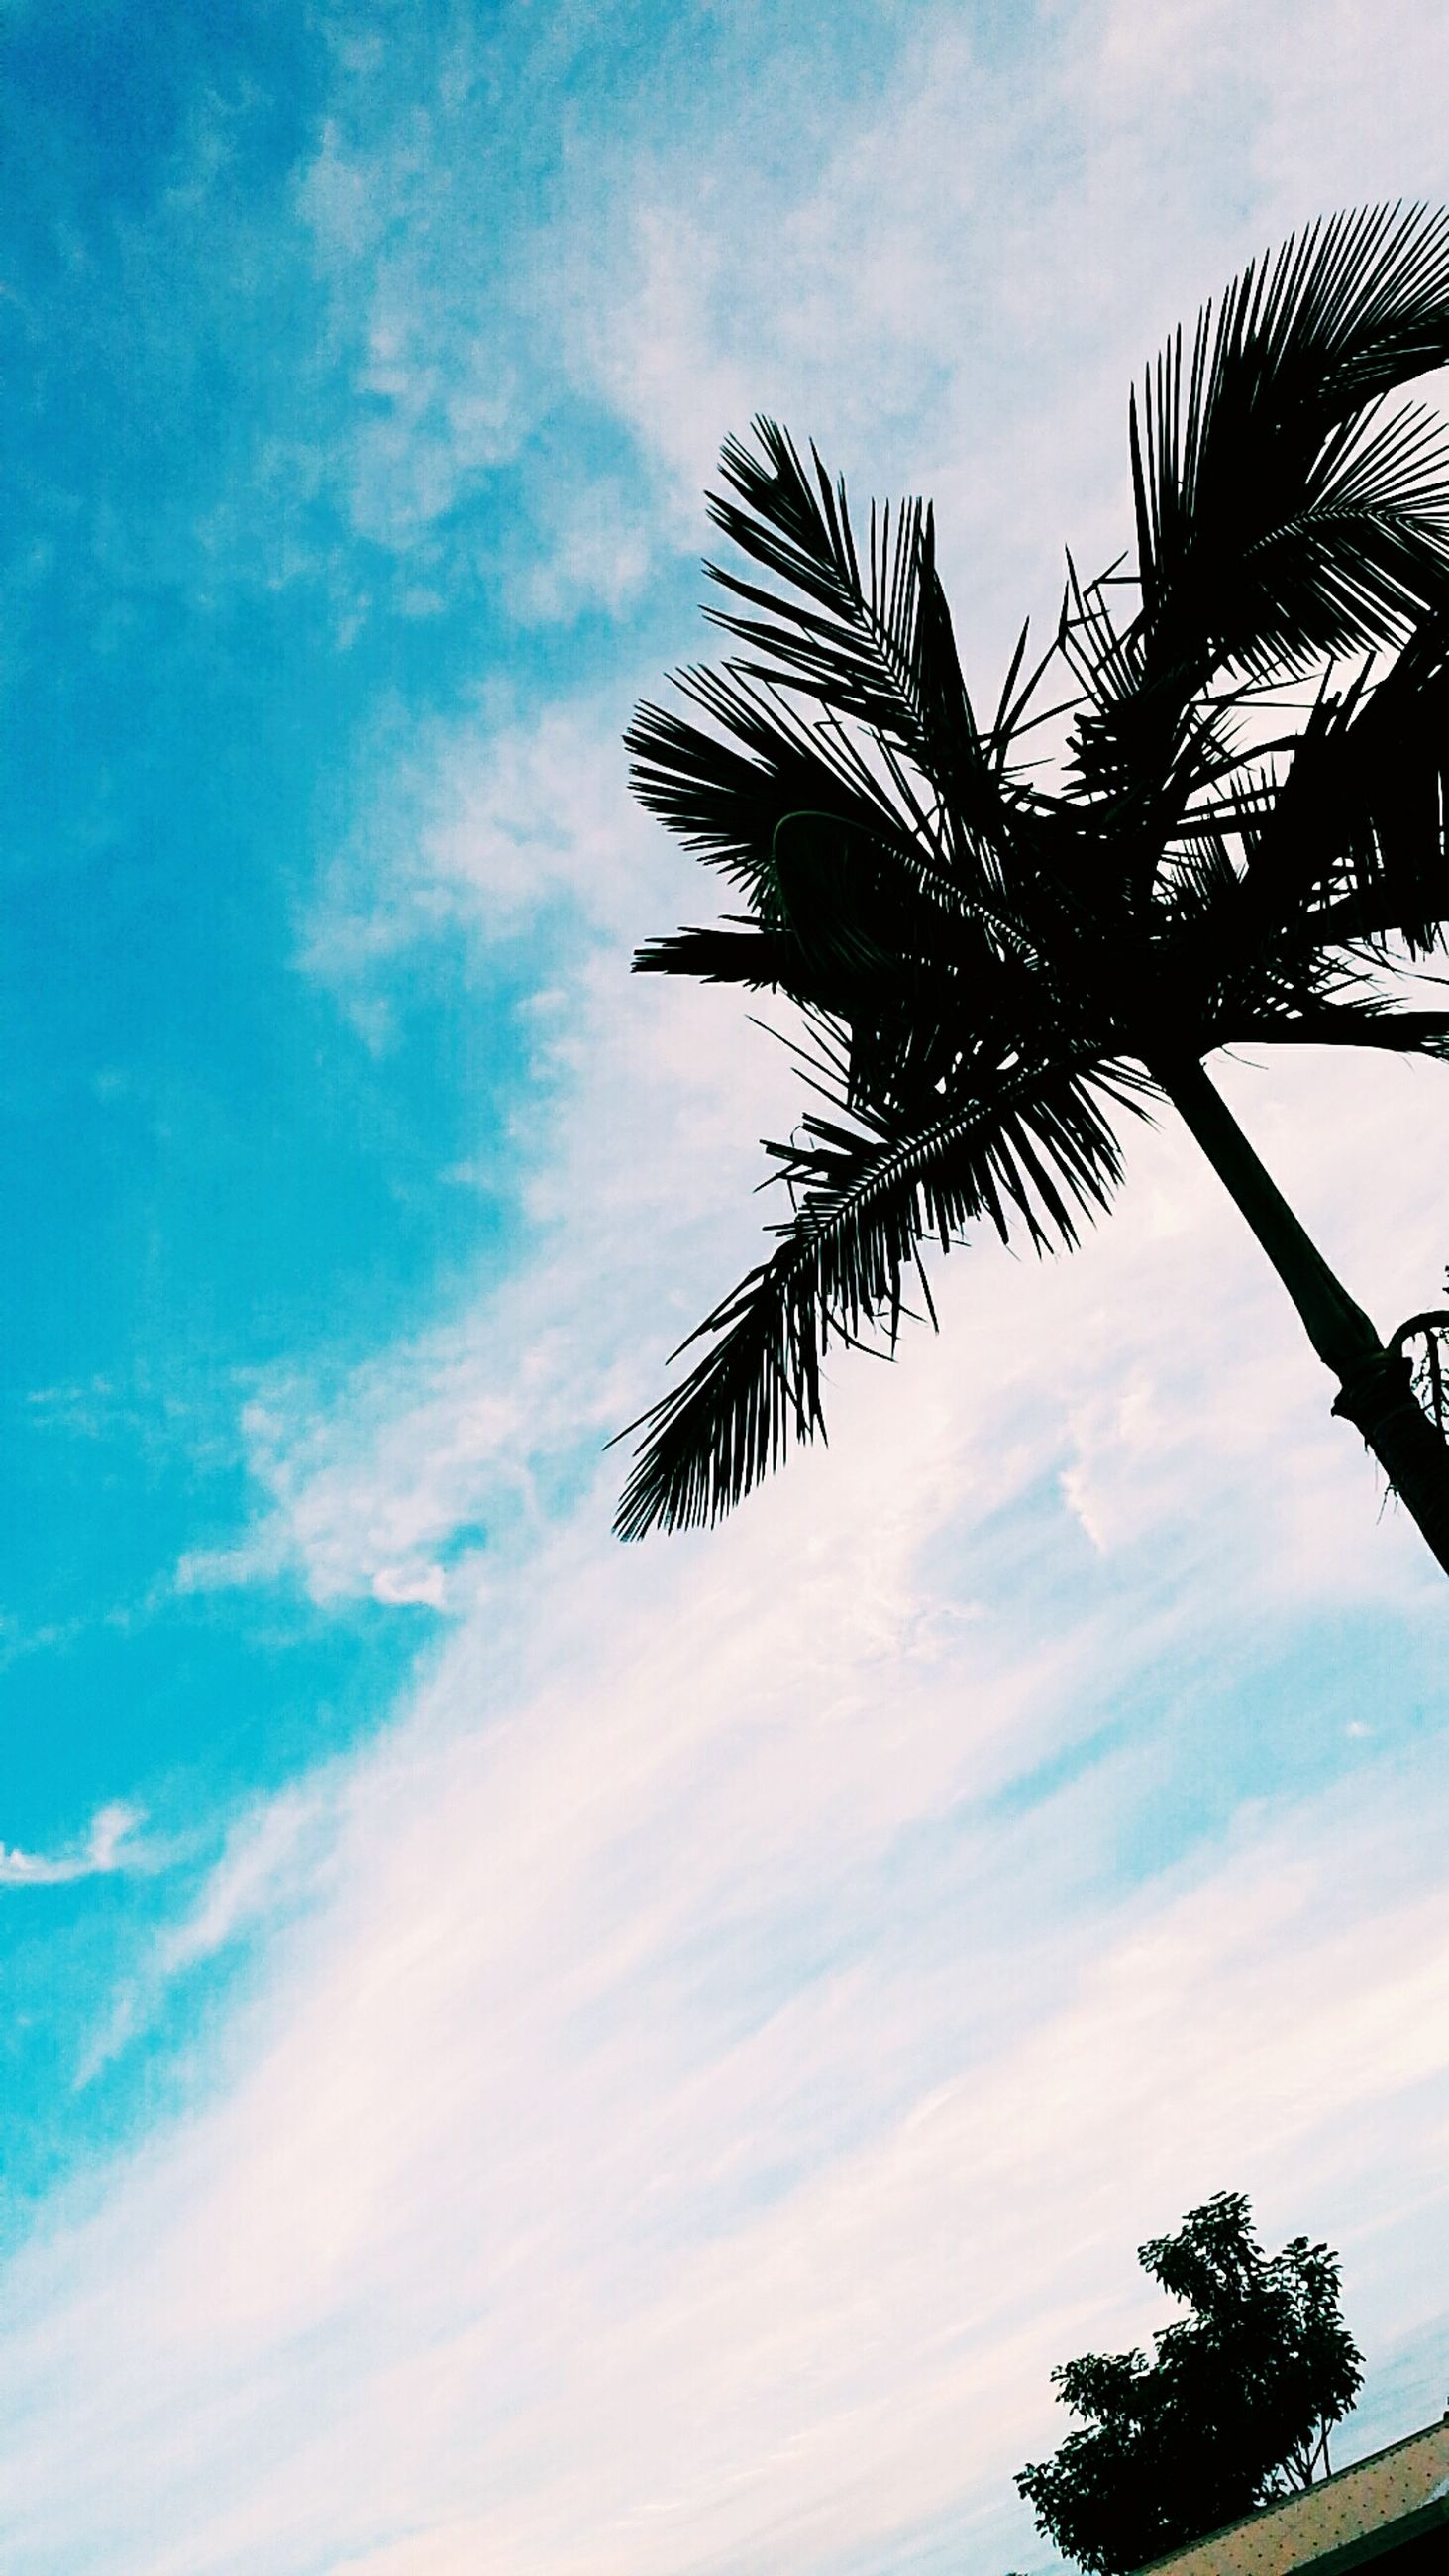 low angle view, palm tree, sky, tree, cloud - sky, silhouette, cloud, blue, tranquility, nature, growth, beauty in nature, cloudy, tree trunk, coconut palm tree, scenics, outdoors, palm leaf, no people, branch